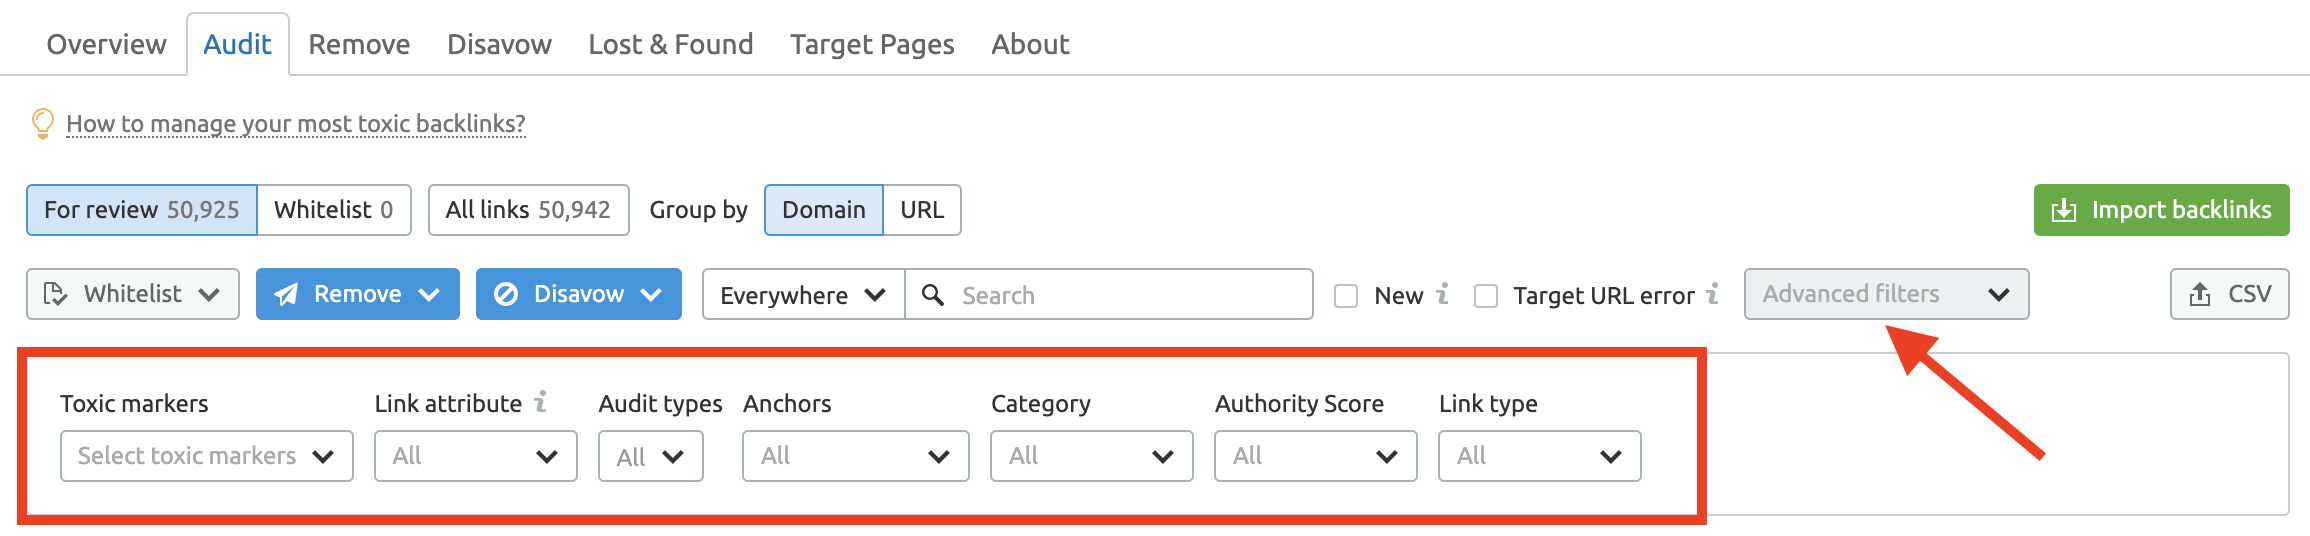 Backlink Audit advanced filters